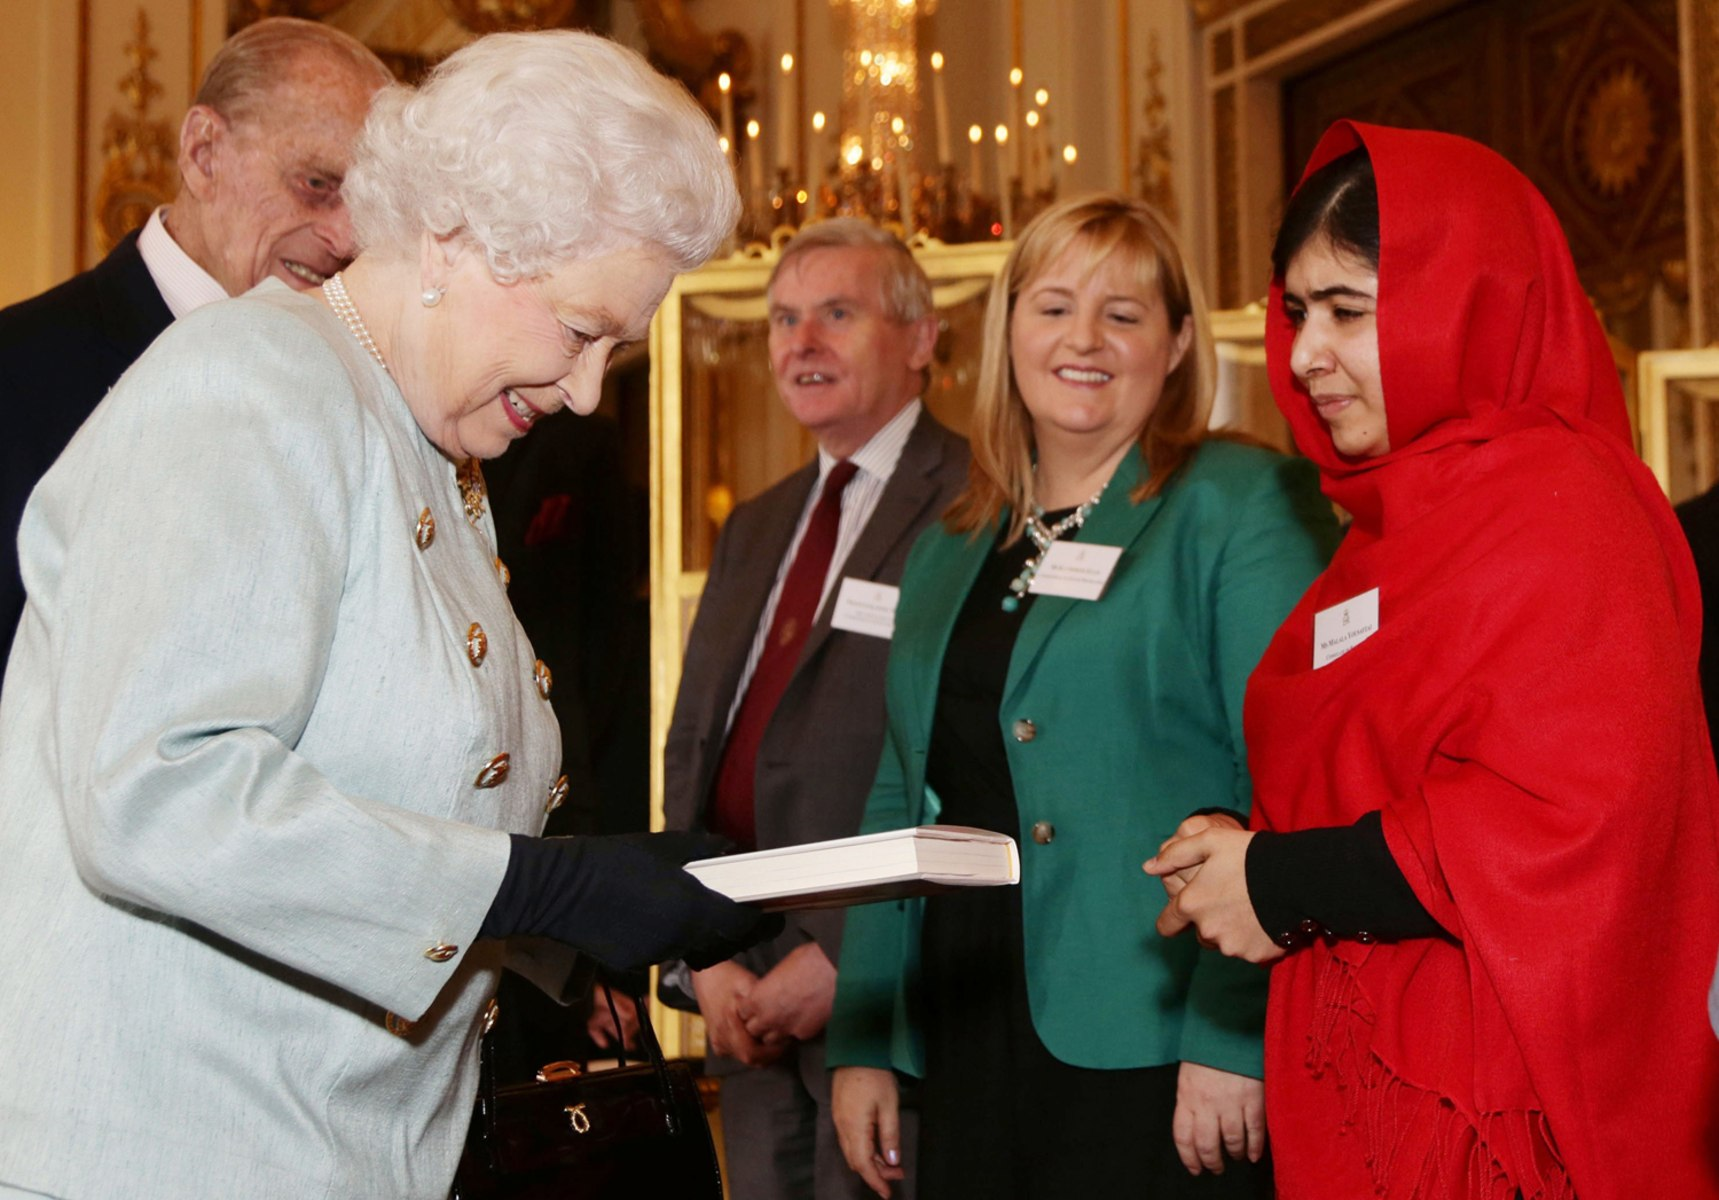 Image: BRITAIN-ROYALS-PAKISTAN-MALALA-EDUCATION